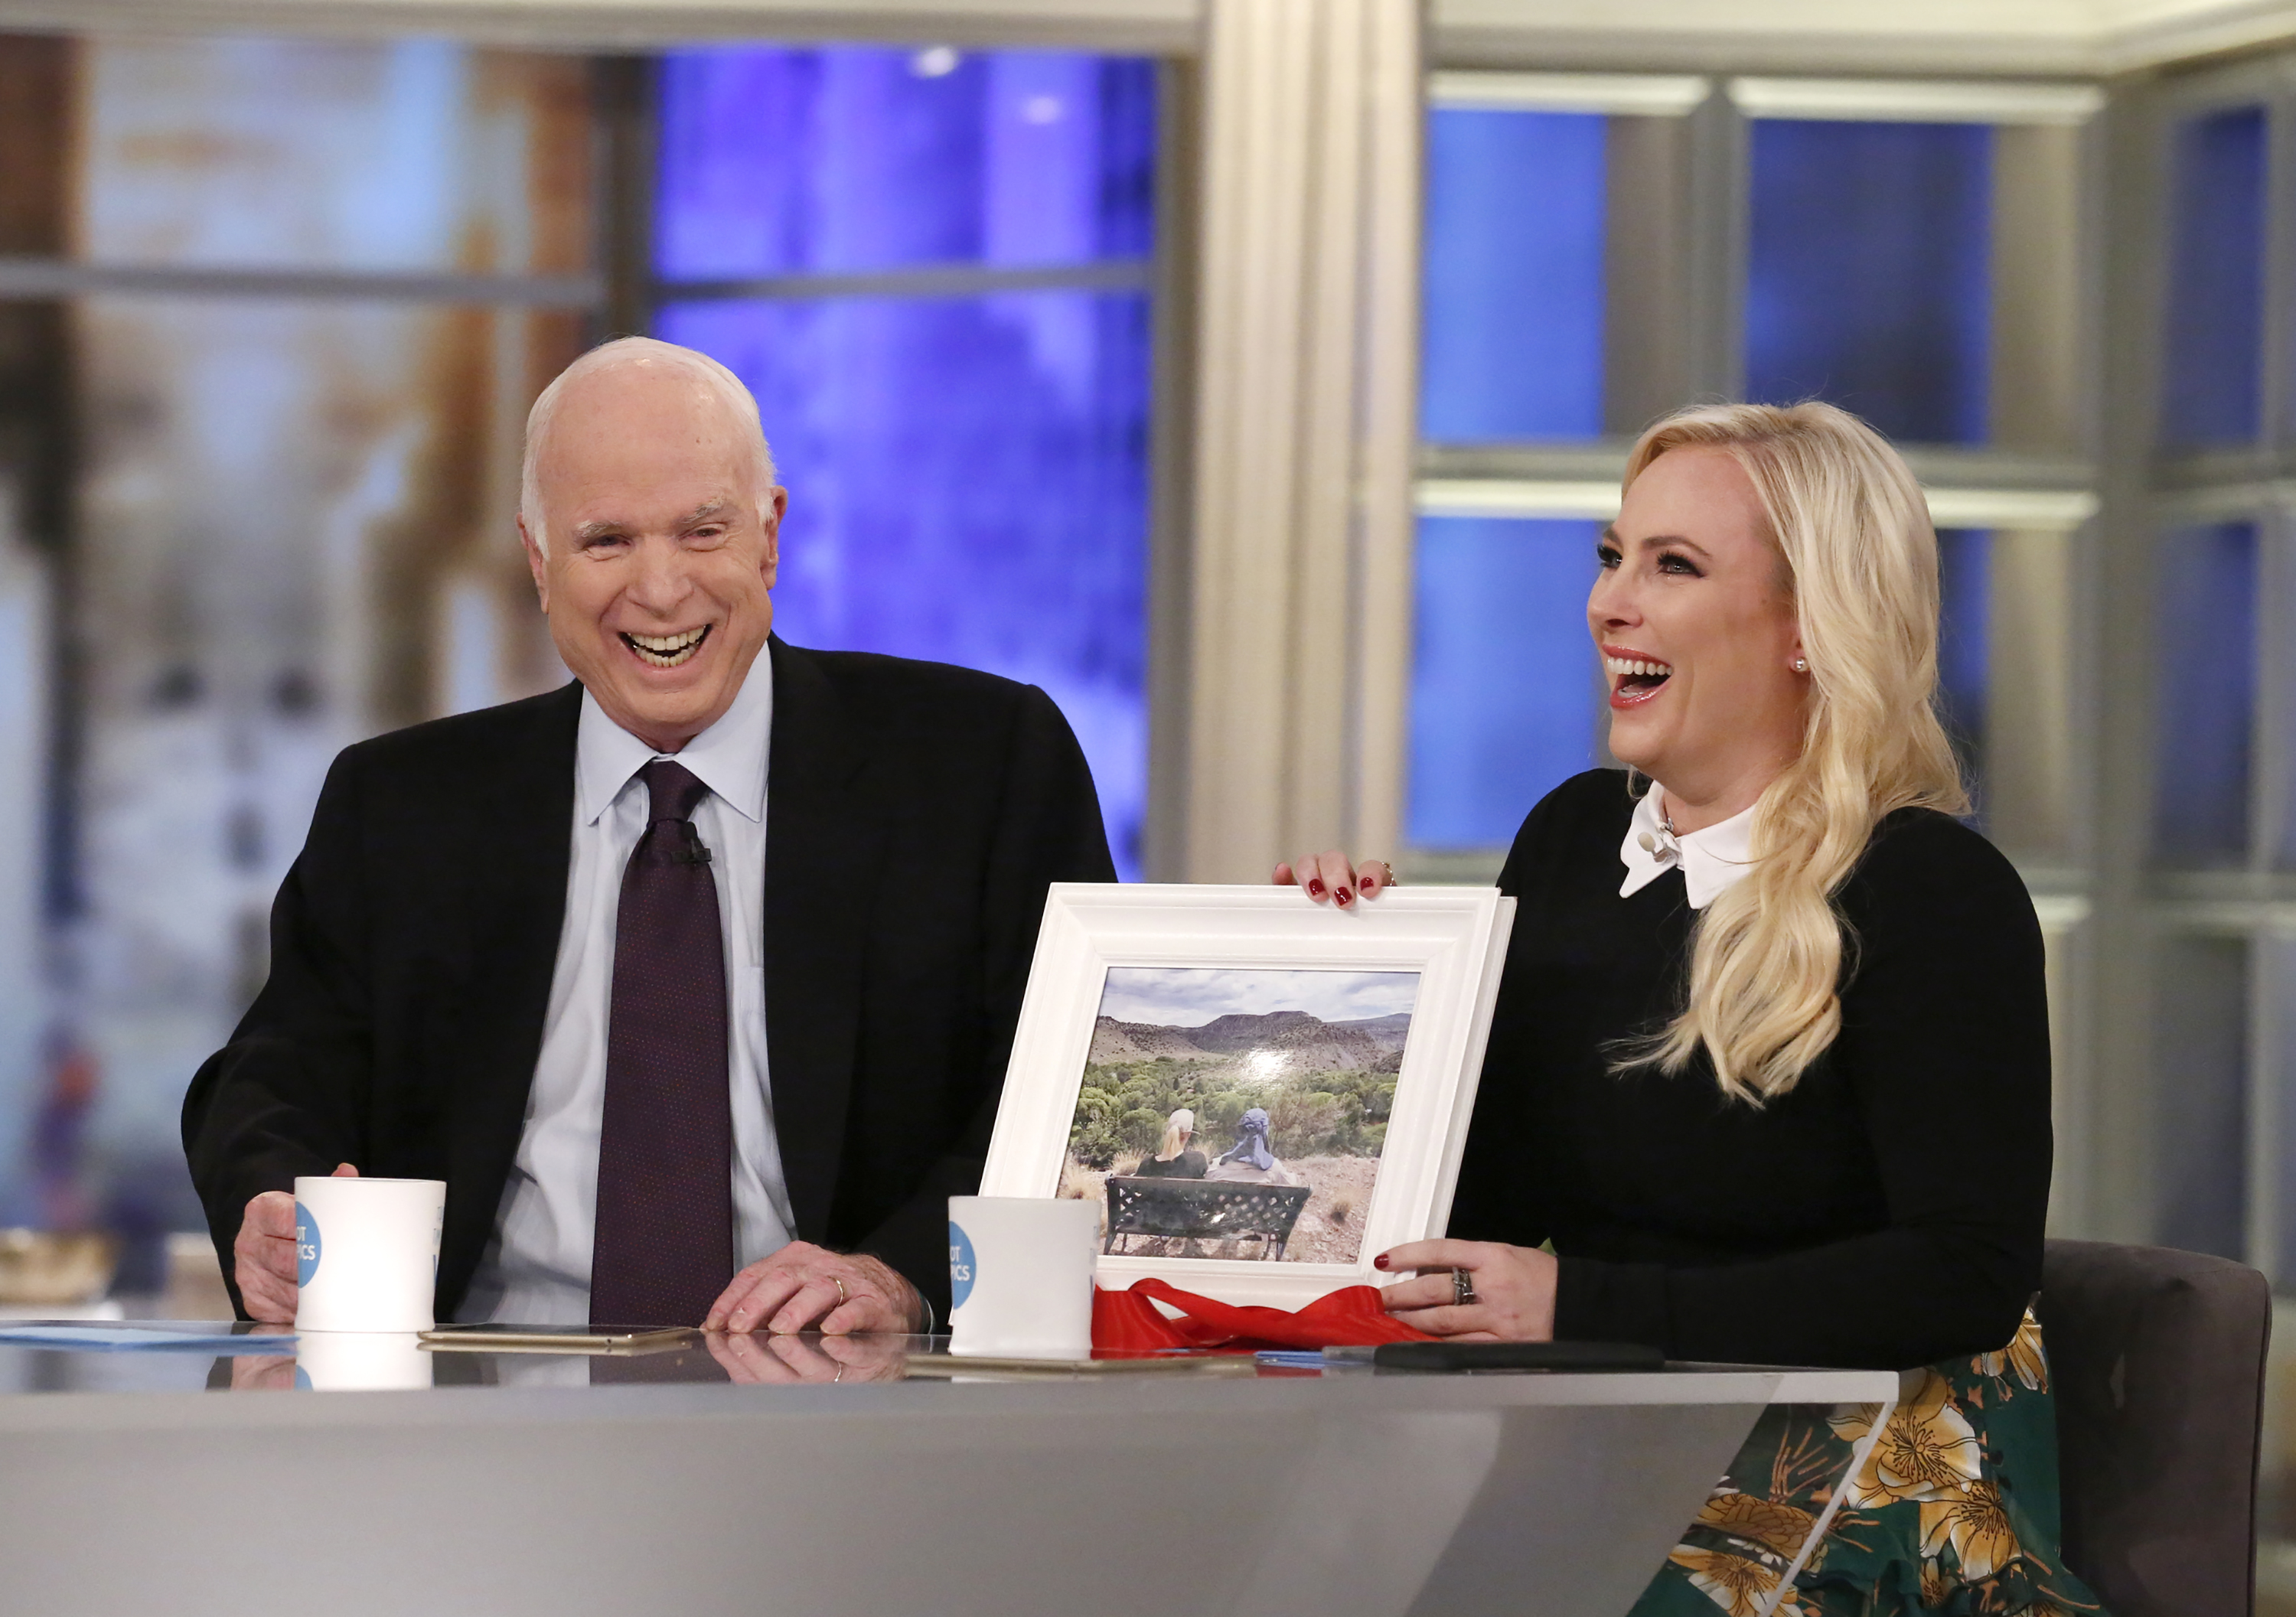 Senator John McCain, Meghan McCain on 'The View', a visit for Meghan McCain's birthday, Monday, October 23, 2017.